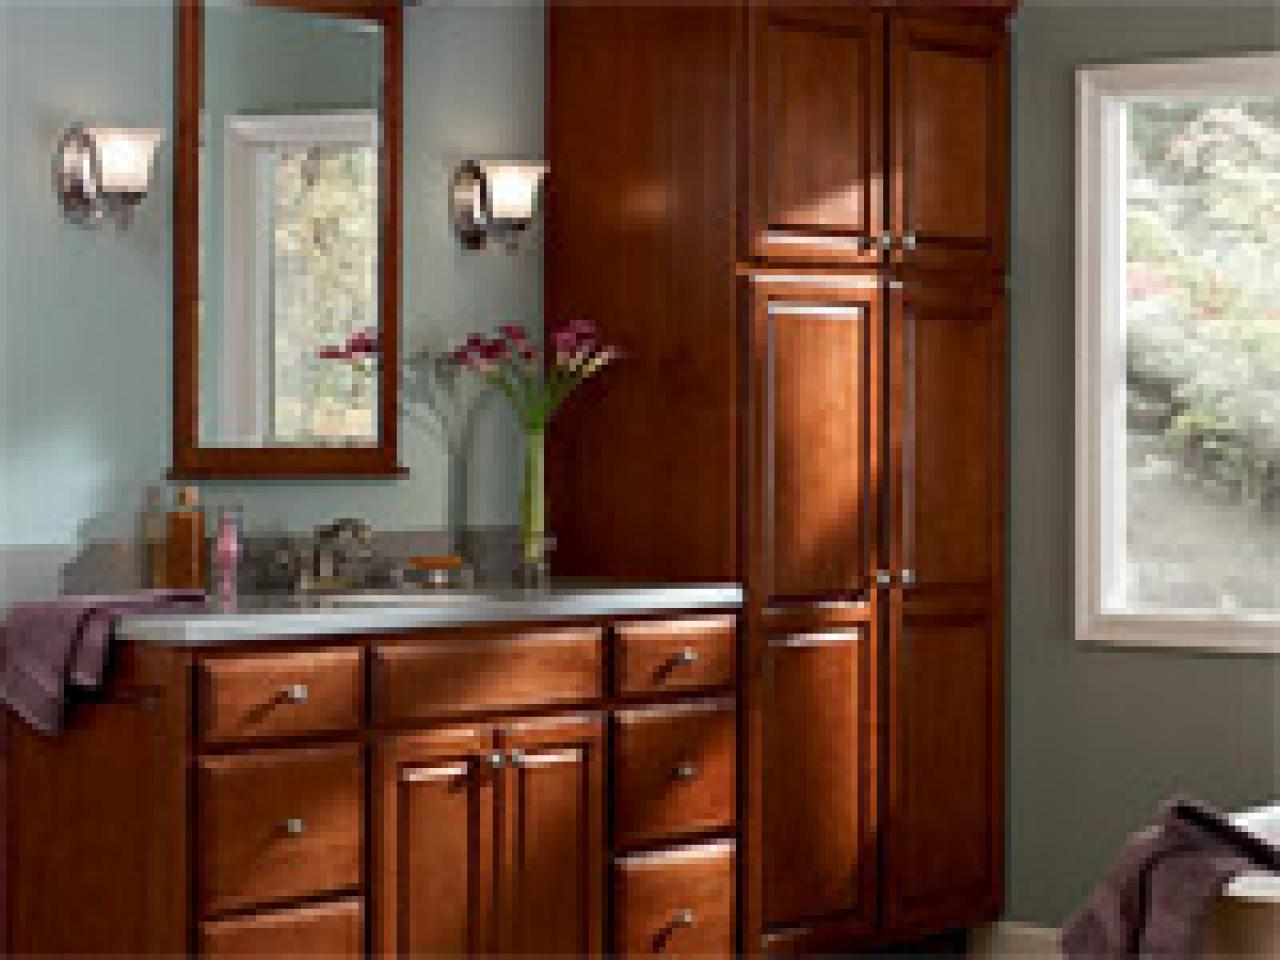 guide to selecting bathroom cabinets | hgtv